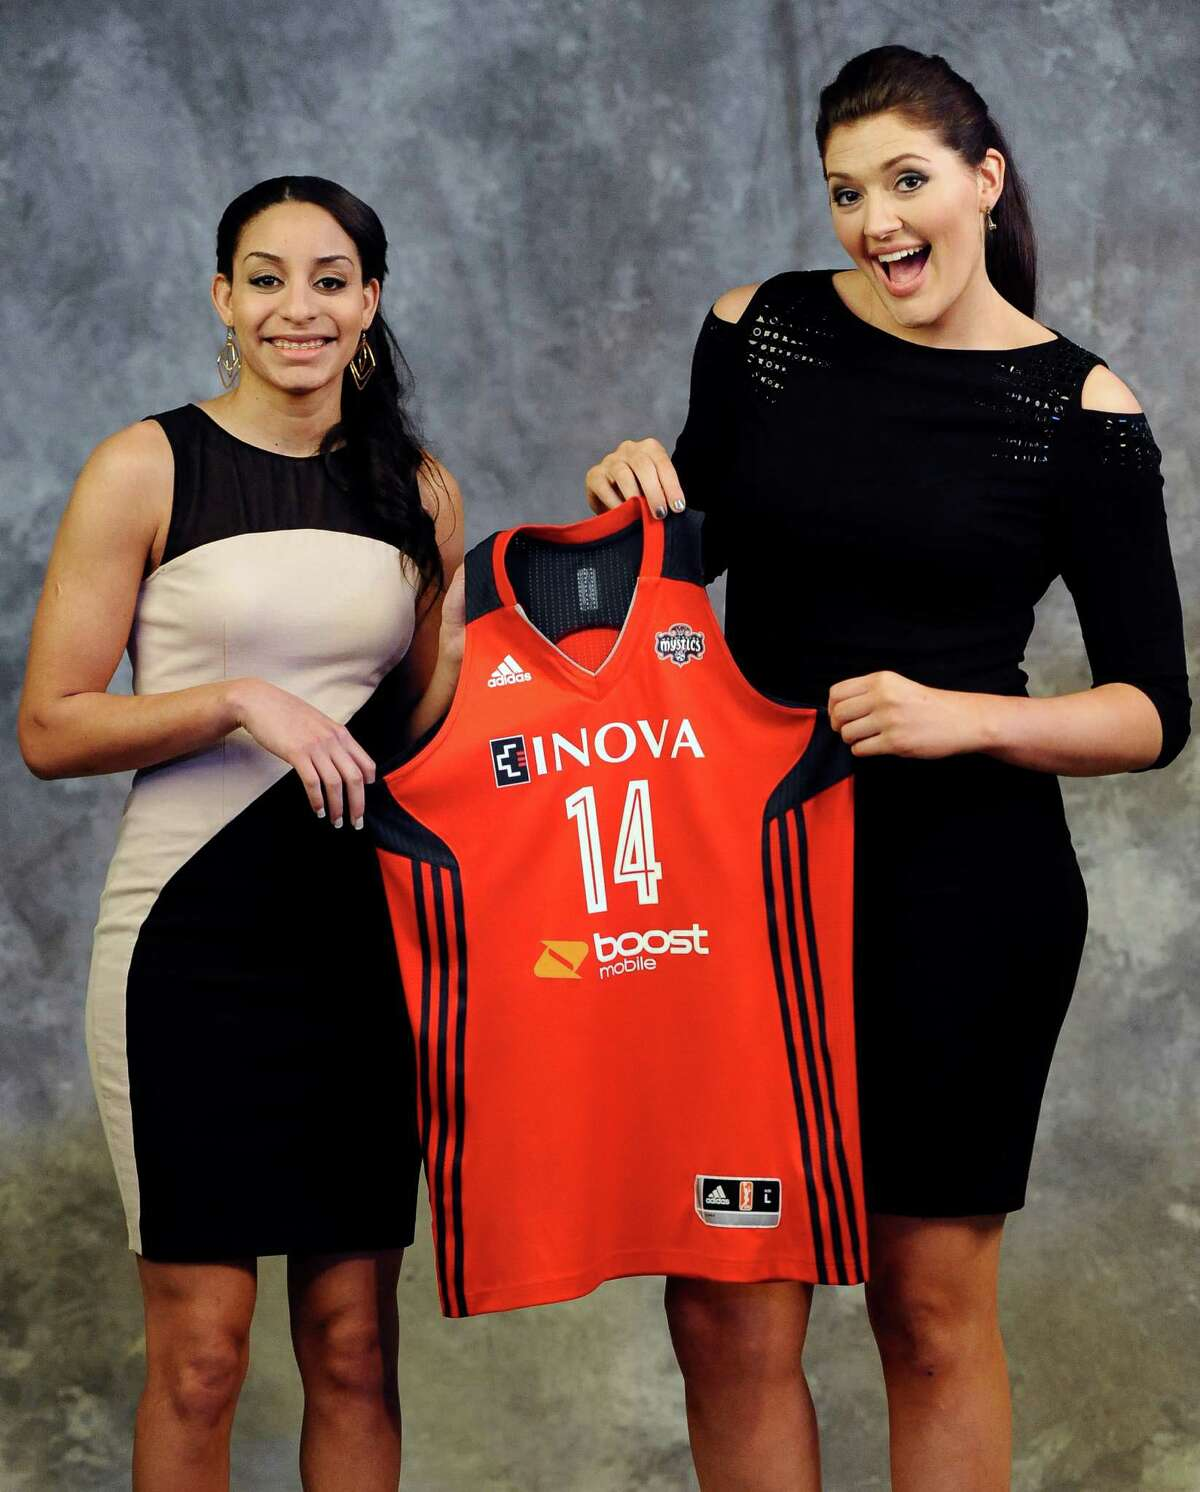 Connecticut's Bria Hartley, left, and Stefanie Dolson, hold up a Washington Mystics jersey after Hartley was traded from the Seattle Storm to the Washington Mystics to play with Dolson in the WNBA basketball draft in, Monday, April 14, 2014, in Uncasville, Conn.